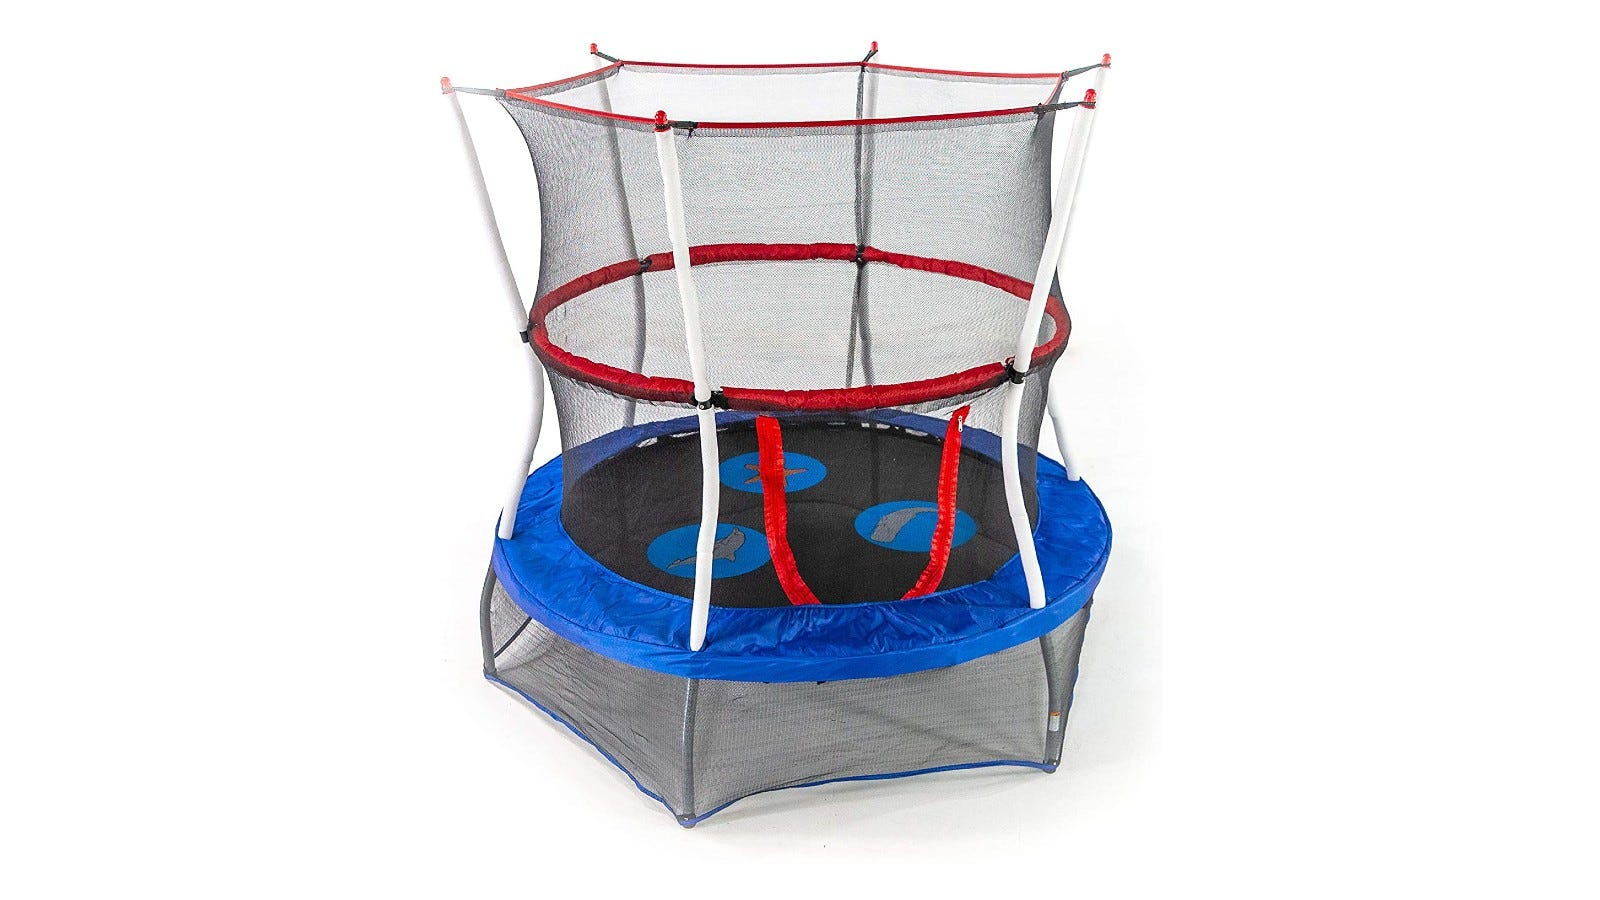 A mini trampoline with a mesh protective enclosure